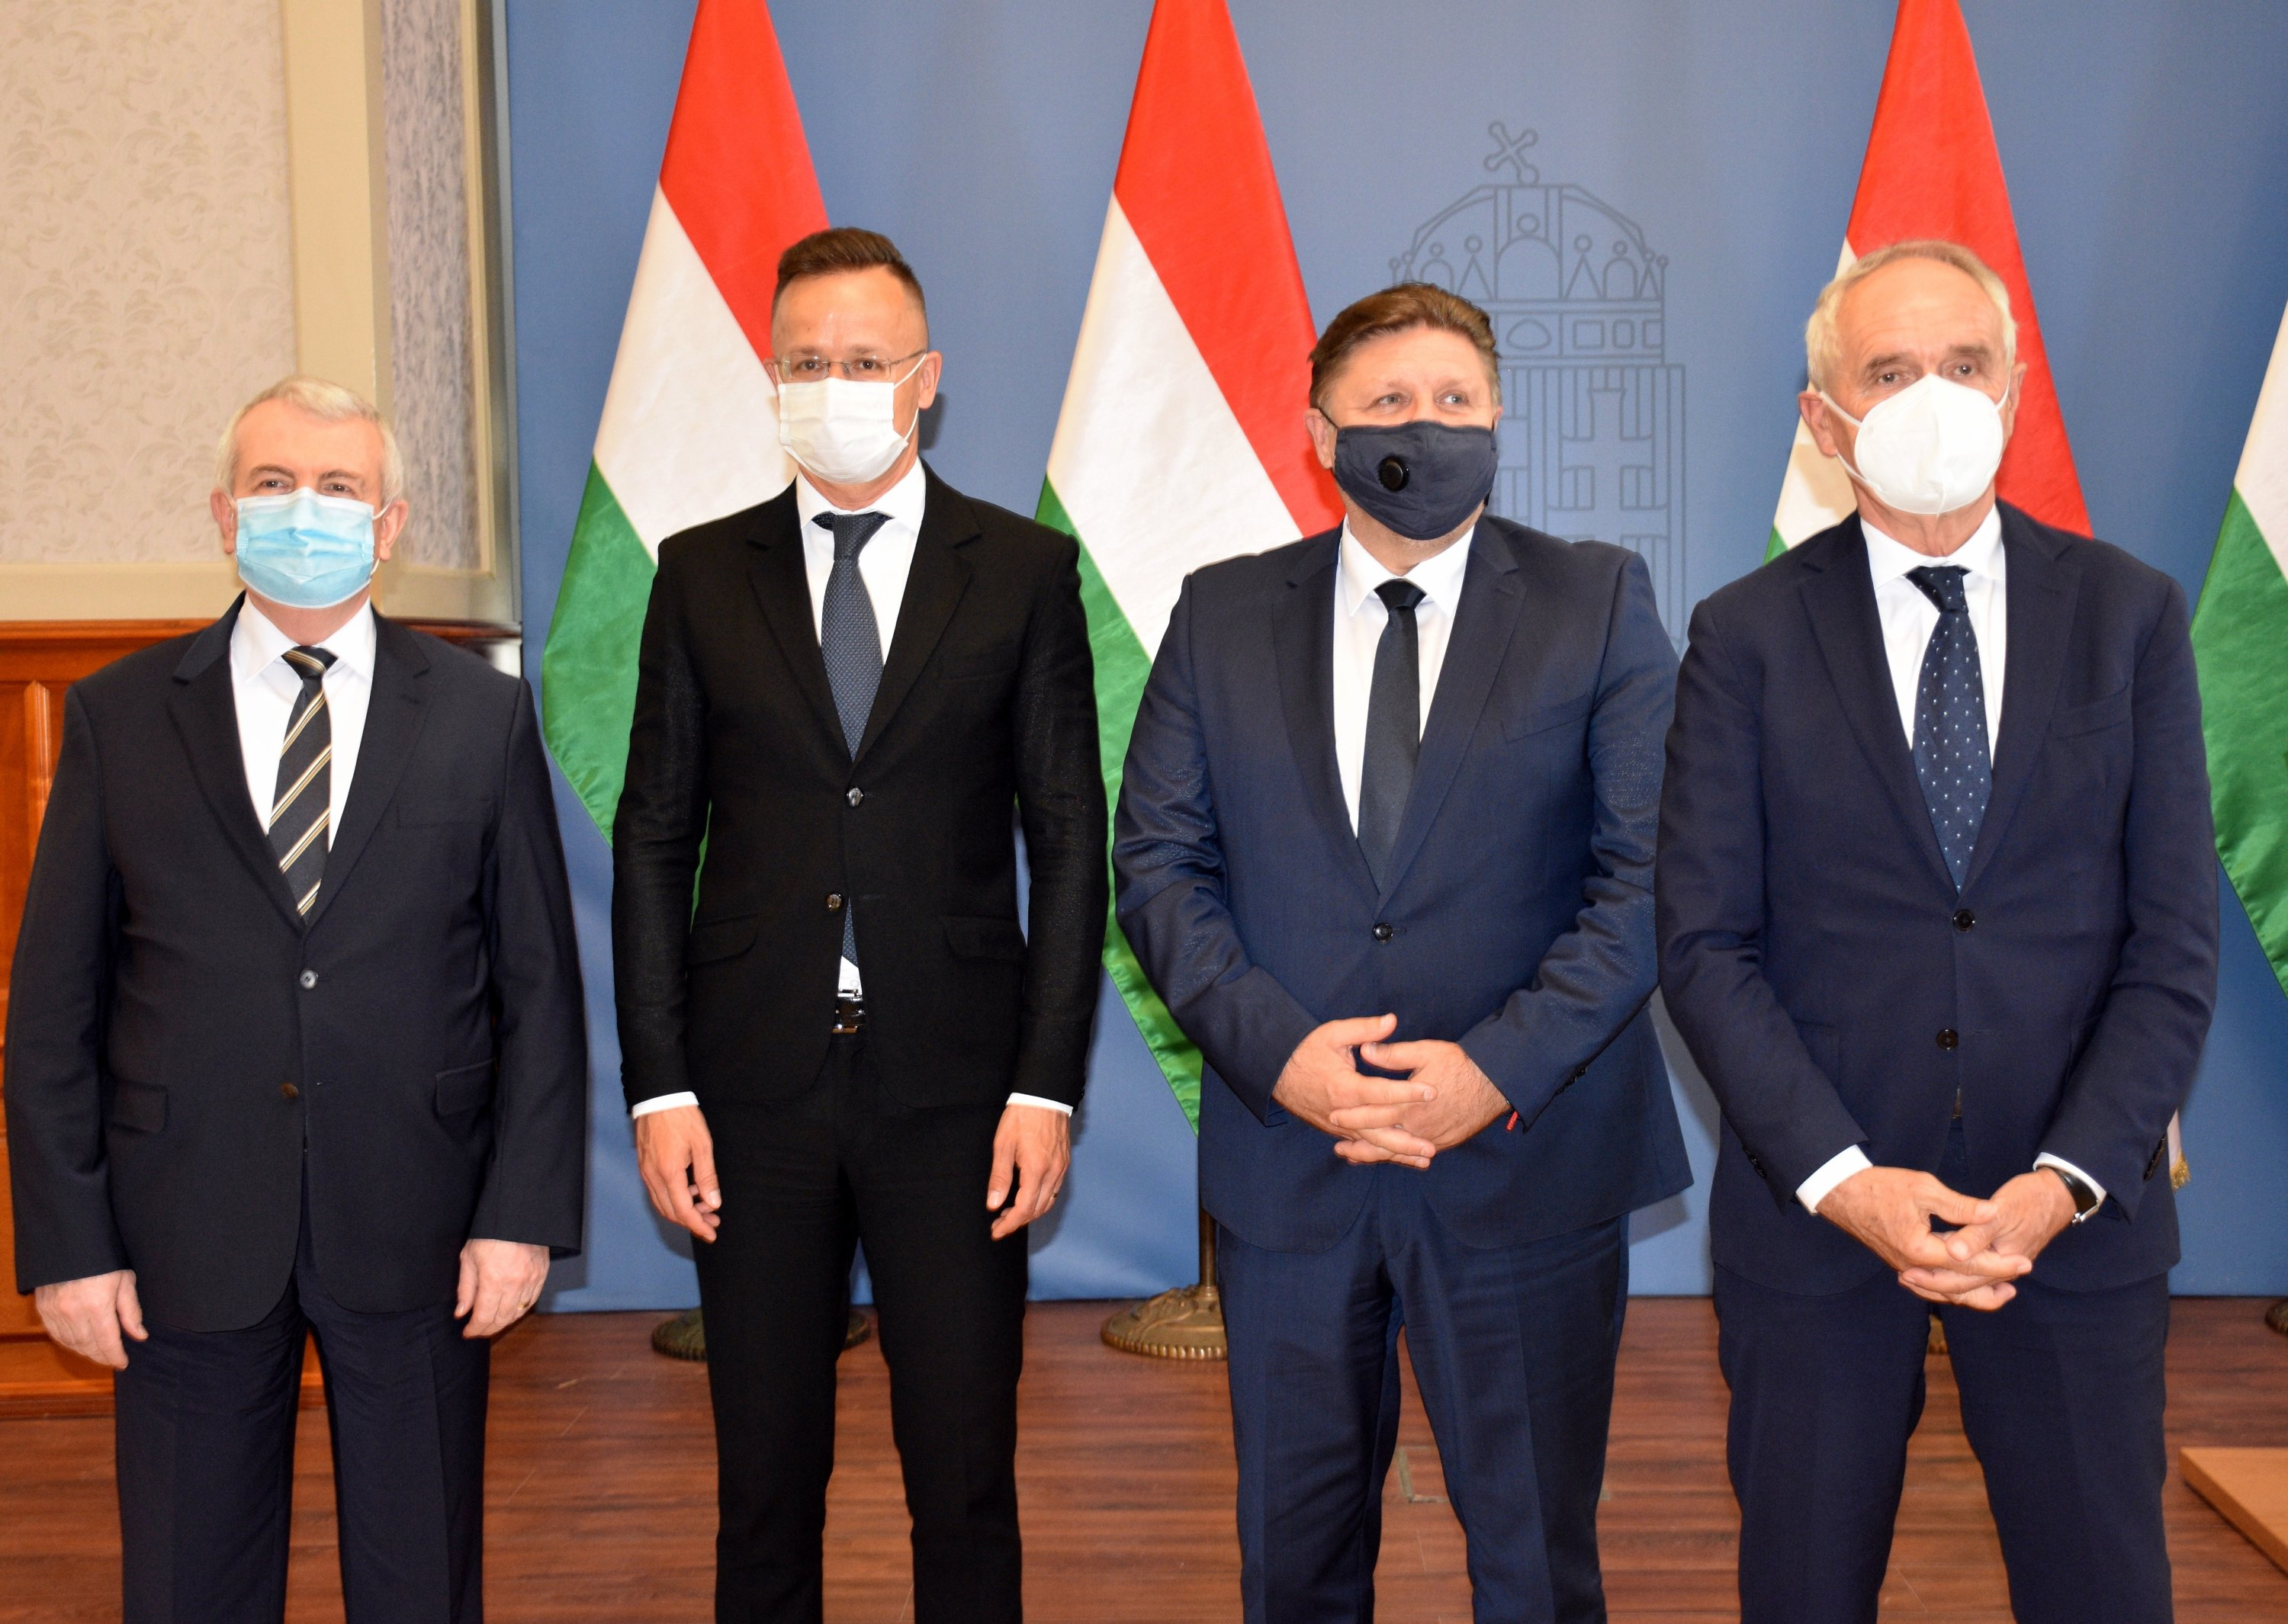 Hungarian Minister of Foreign Affairs and Foreign Trade Peter Szijjarto (2nd L) and Turkish Ambassador to Budapest Ahmet Akif Oktay (L) attend a ceremony held for the opening of the Şişecam factory in the country, Budapest, Hungary, June 7, 2021. (AA Photo)